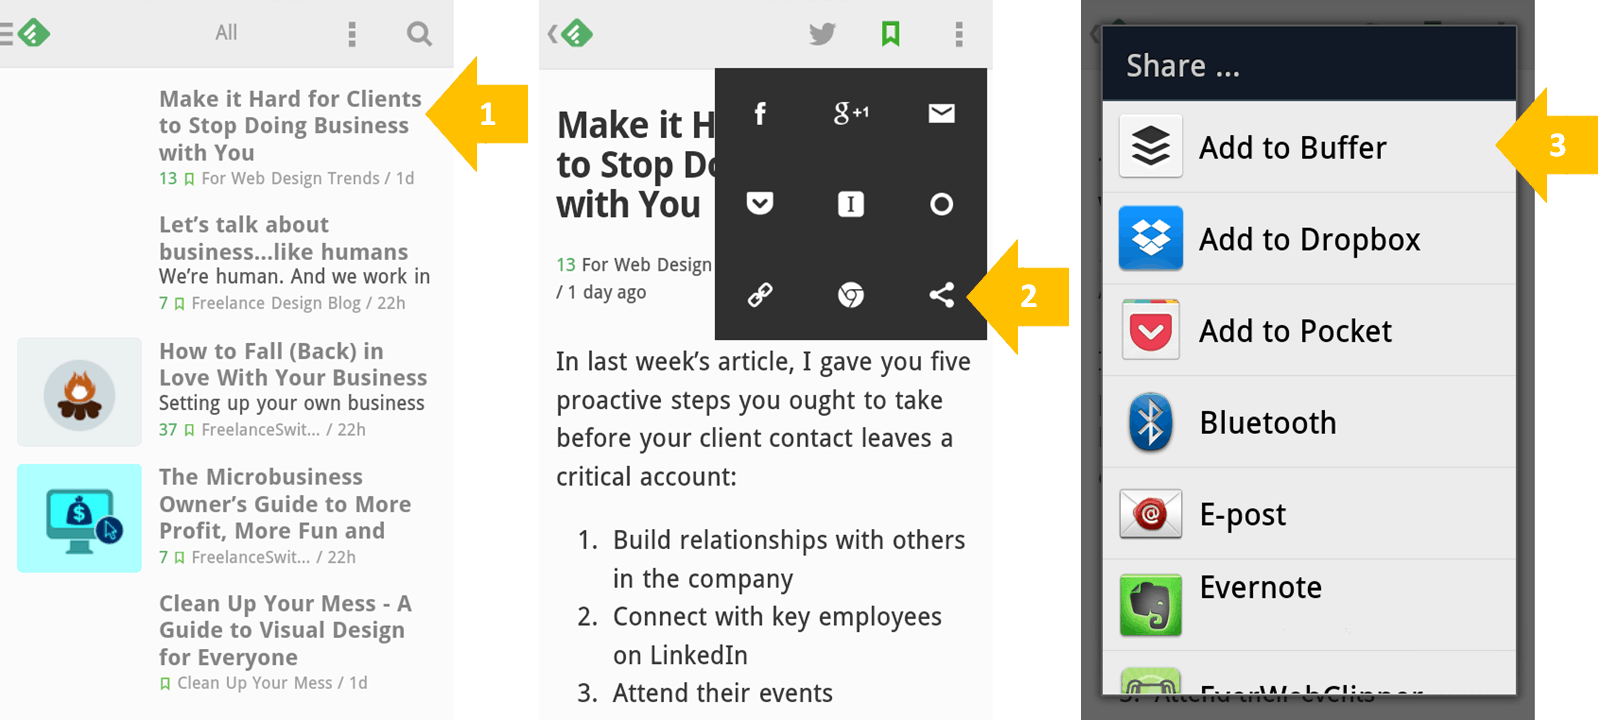 Use Feedly and Buffer to Find Content and Share in Feedly (step 1-3)